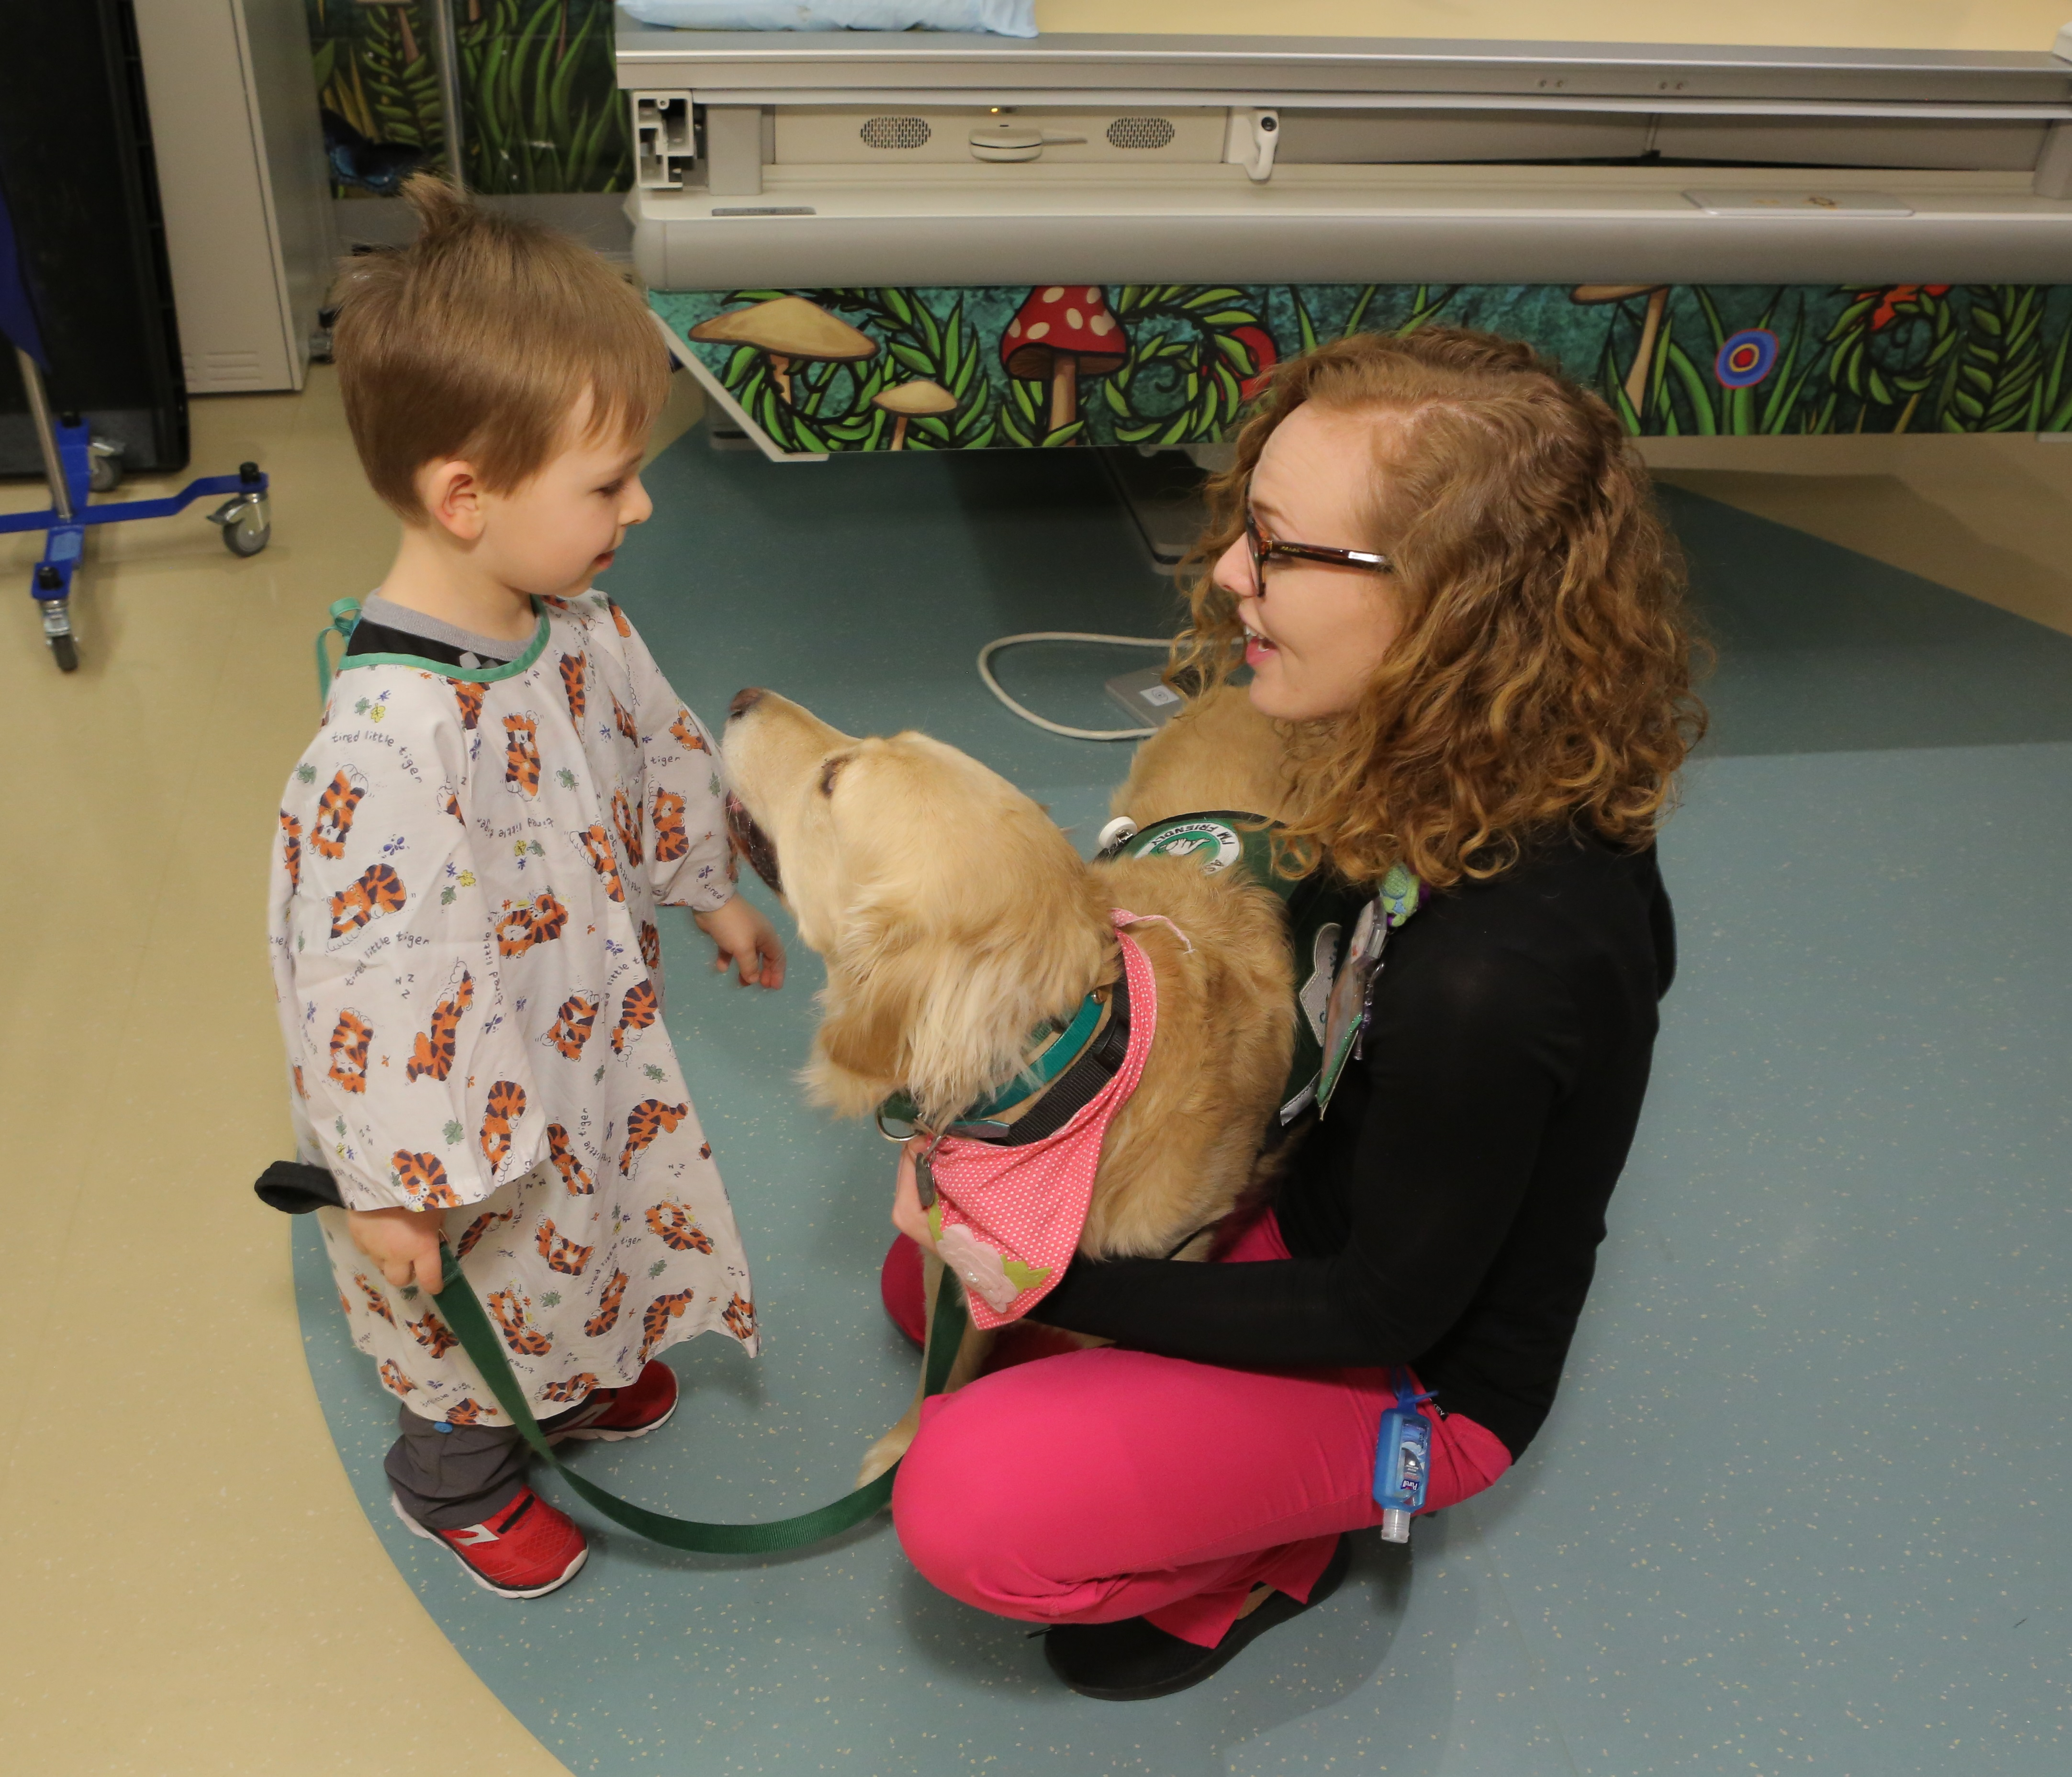 A three-year-old boy wearing a hospital smock holds a dog leash attached to a Golden Retriever. The dog looks at the boy. A young woman wearing glasses crouches down and smiles at the boy while holding the dog. Behind them is a CT scan table and a pole with wheels.